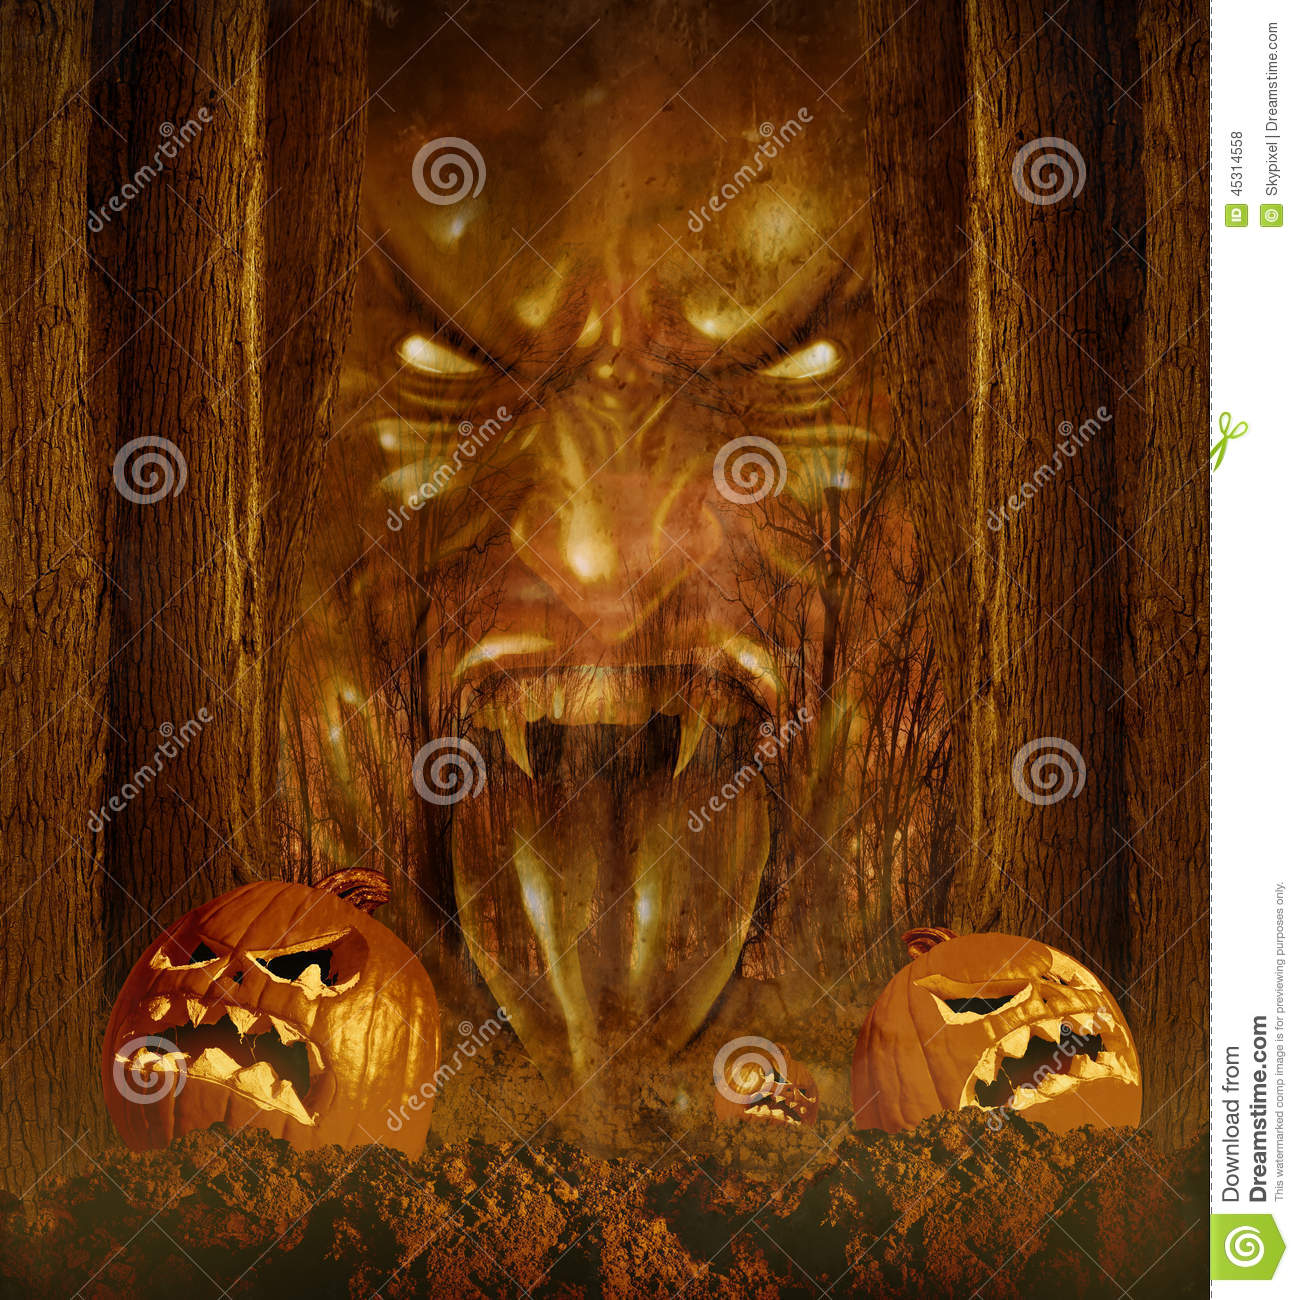 Ghost In Haunted Forest On Halloween Royalty-Free Stock